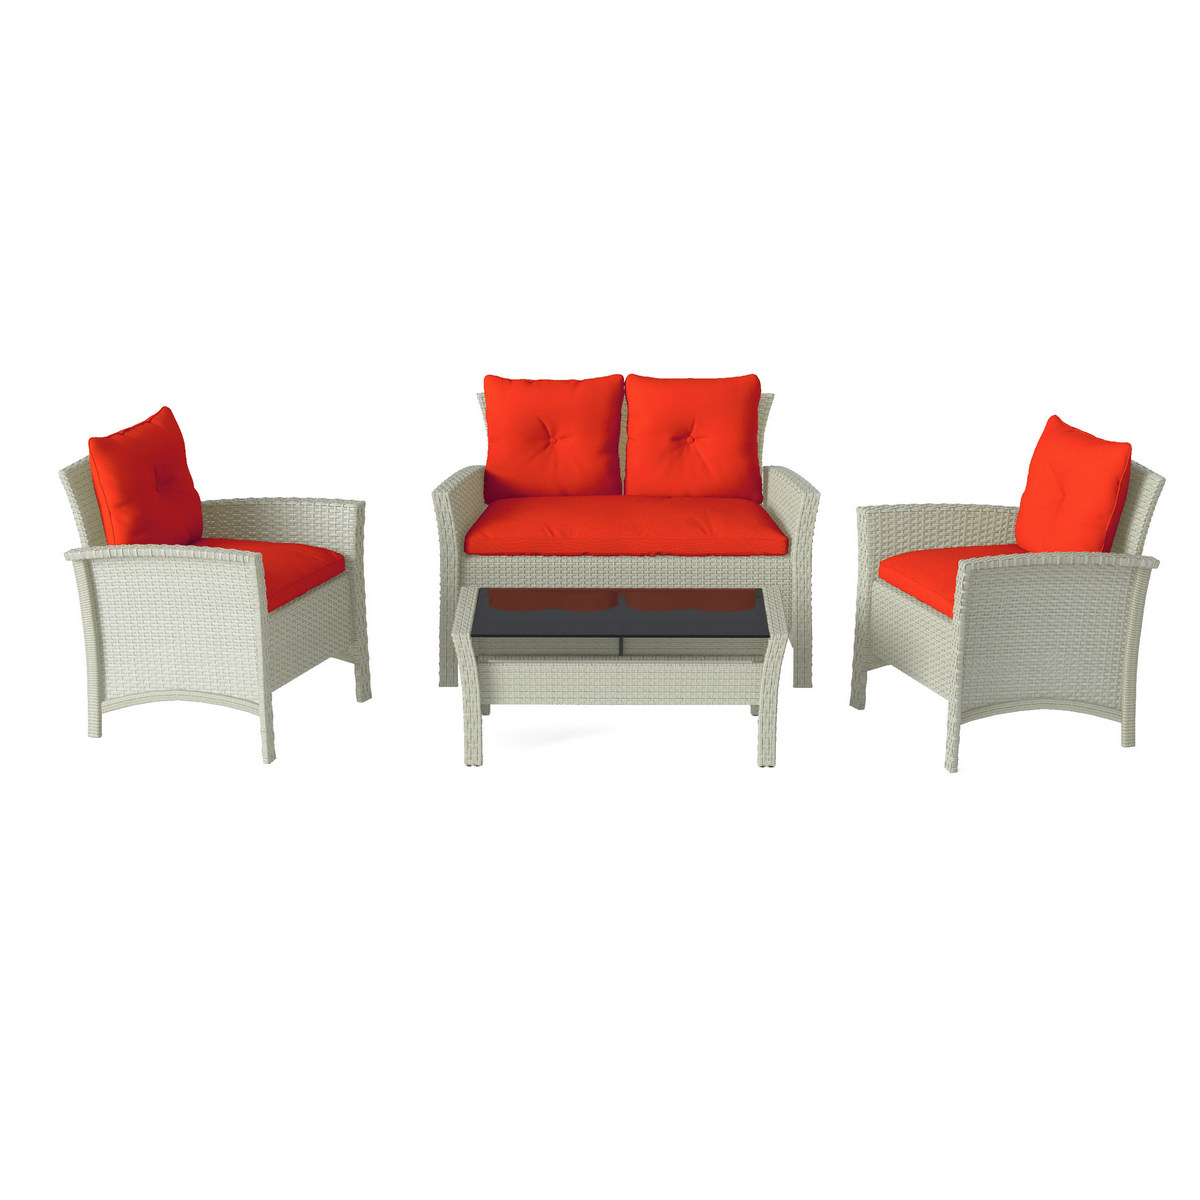 Corliving Furniture Patio Set Resin Rattan Wicker Red Photo